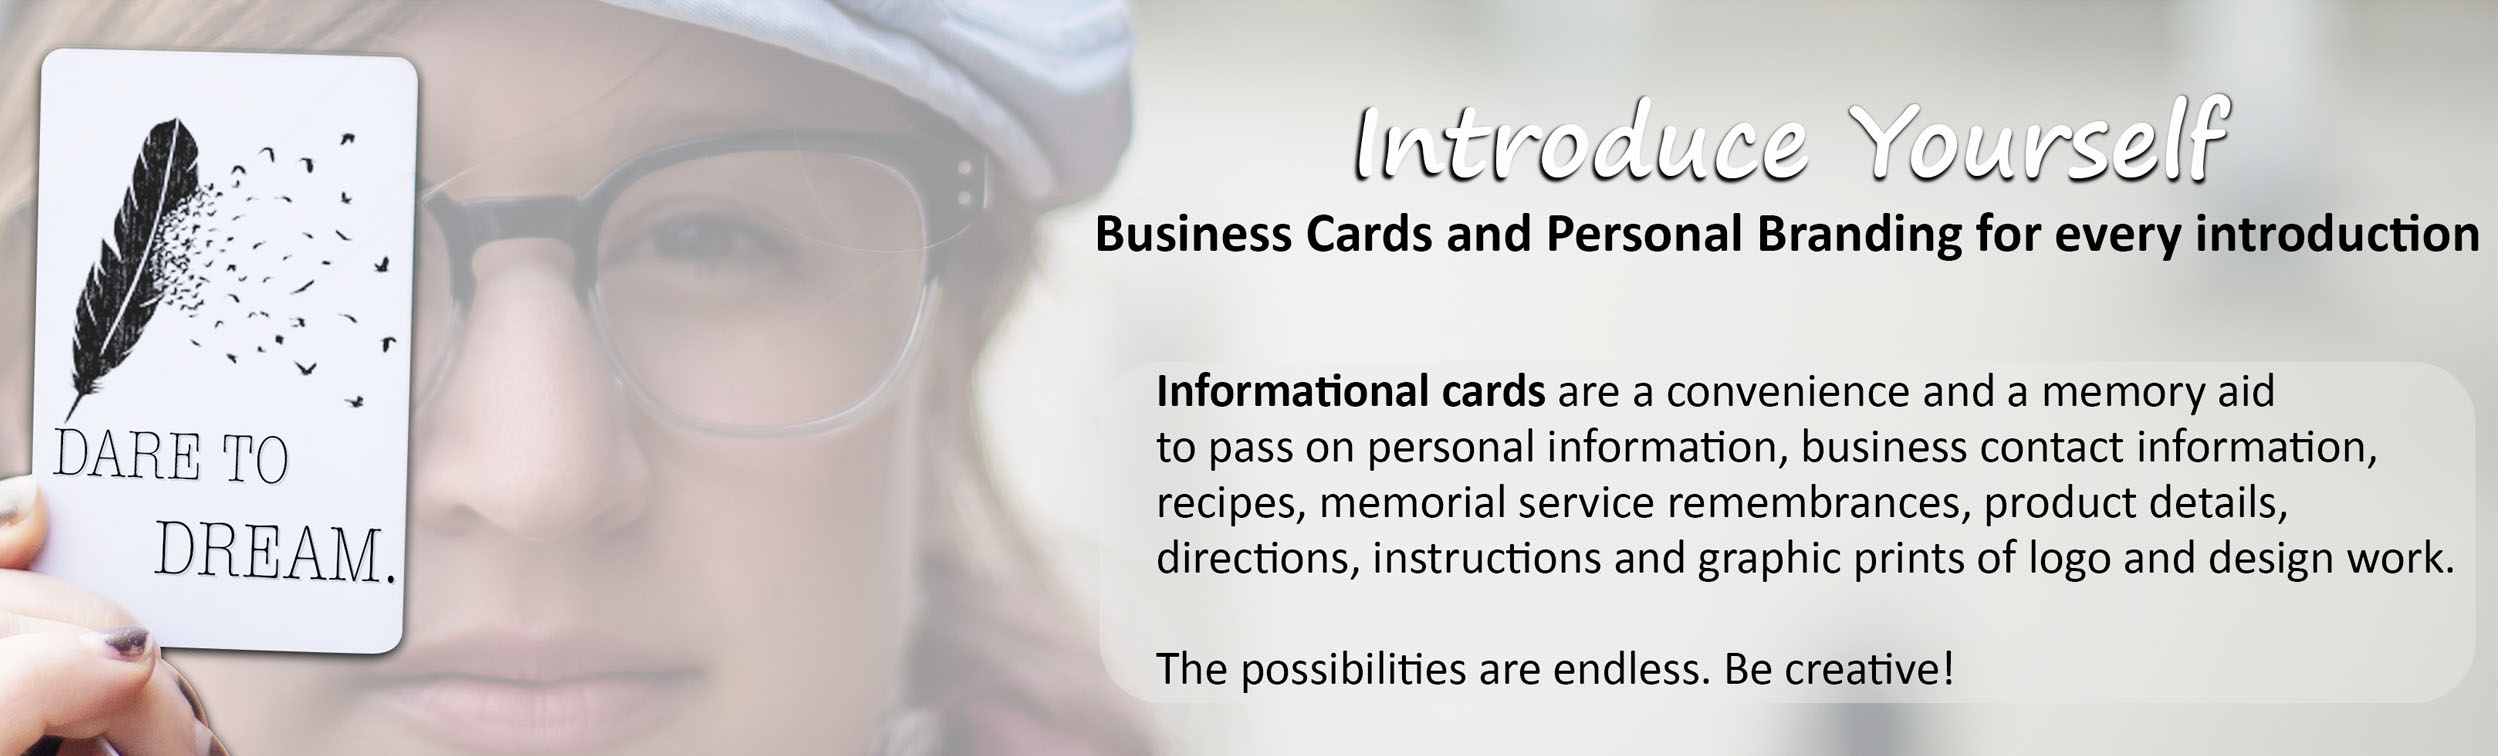 Informational Business Cards and Palm Cards